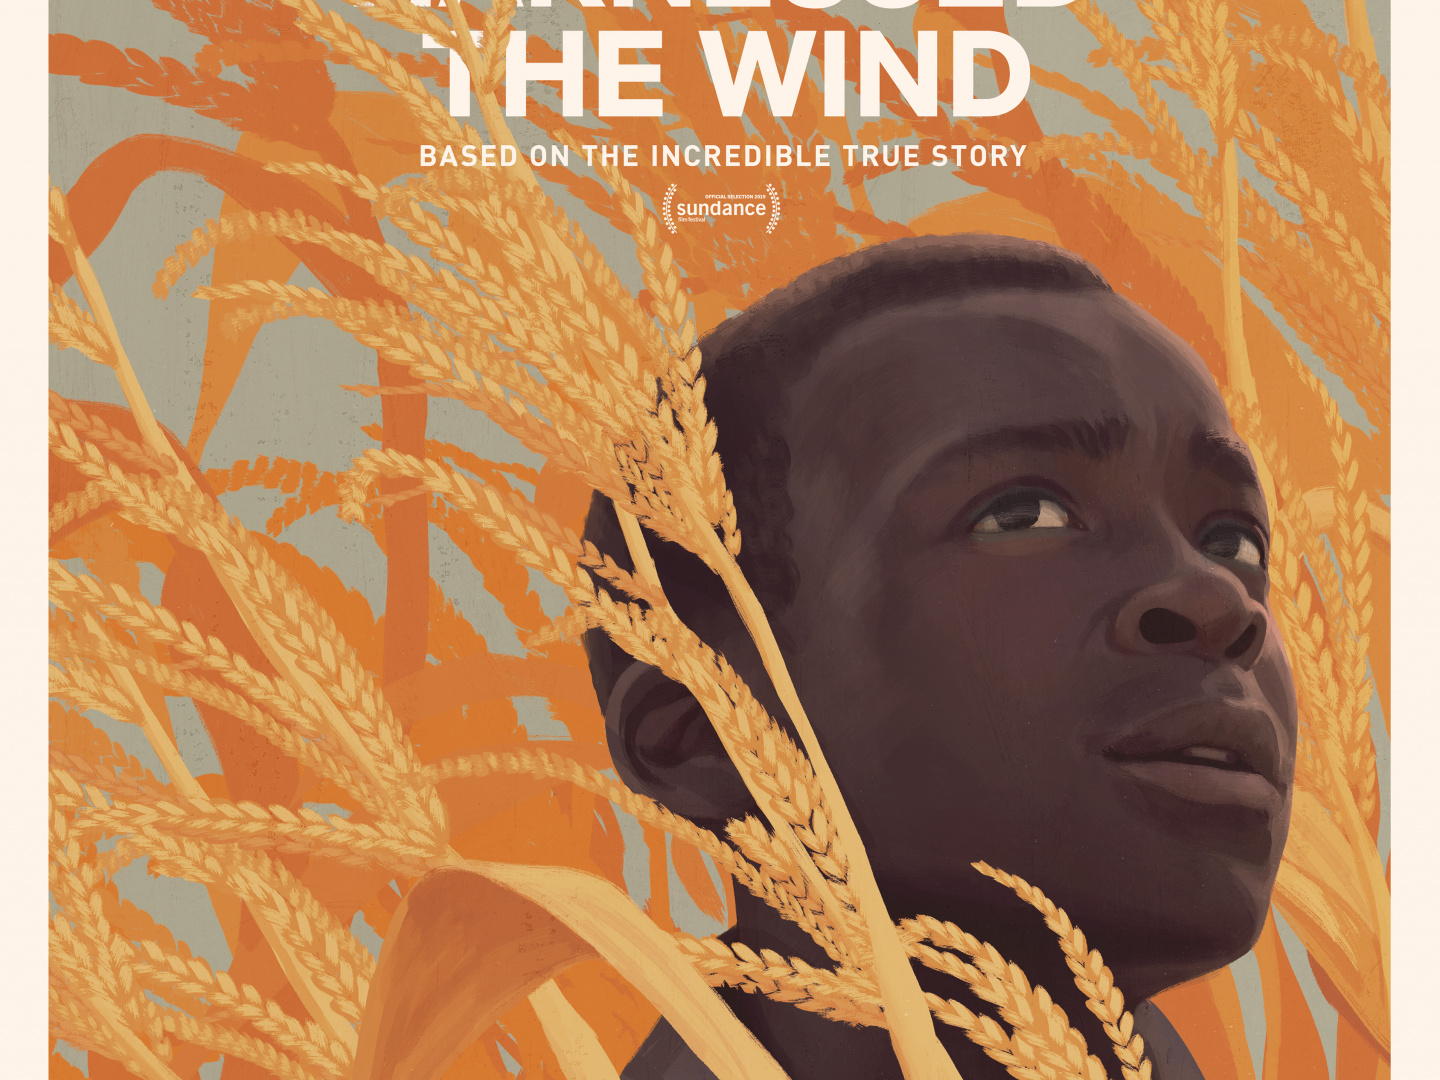 The Boy Who Harnessed The Wind / Illustrated Key Art Thumbnail